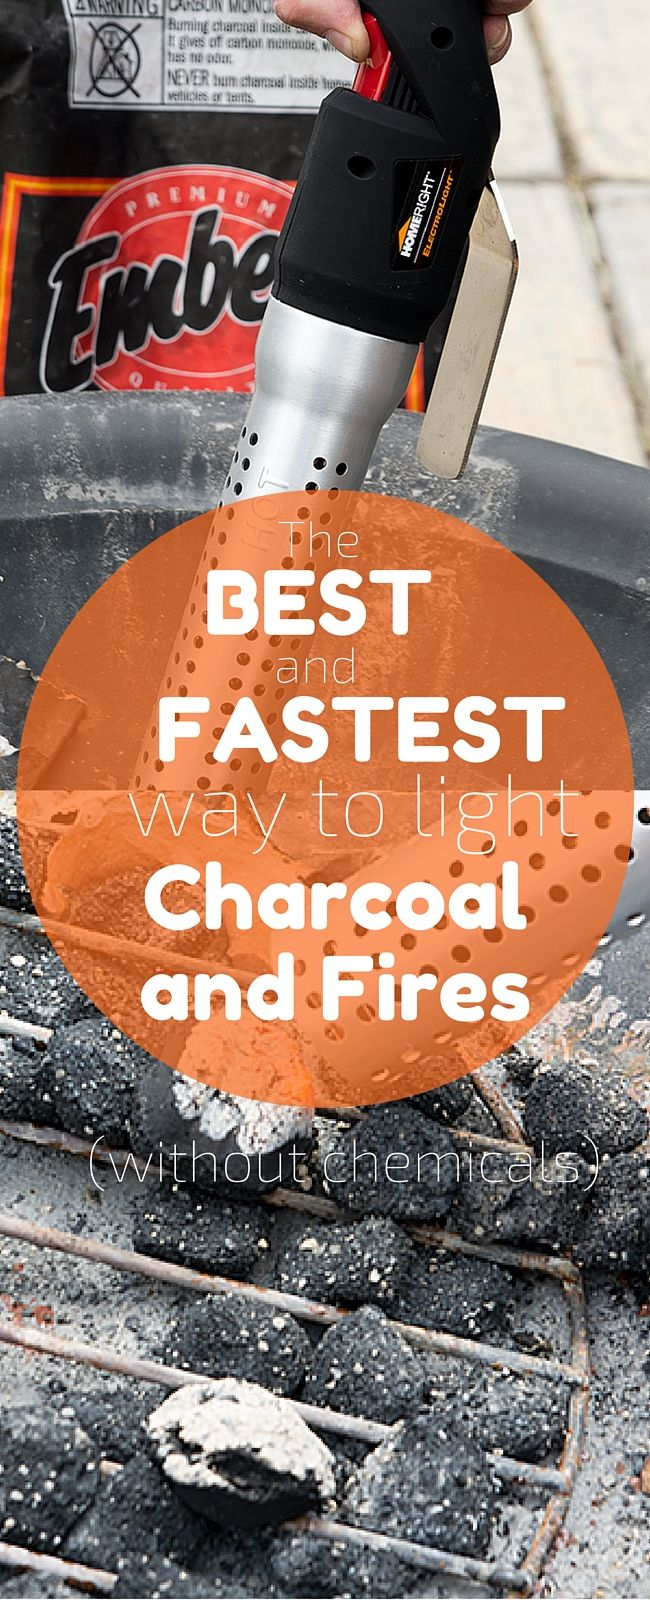 The best and fastest way to light charcoal or start a fire. A must have for any outdoor enthusiast!